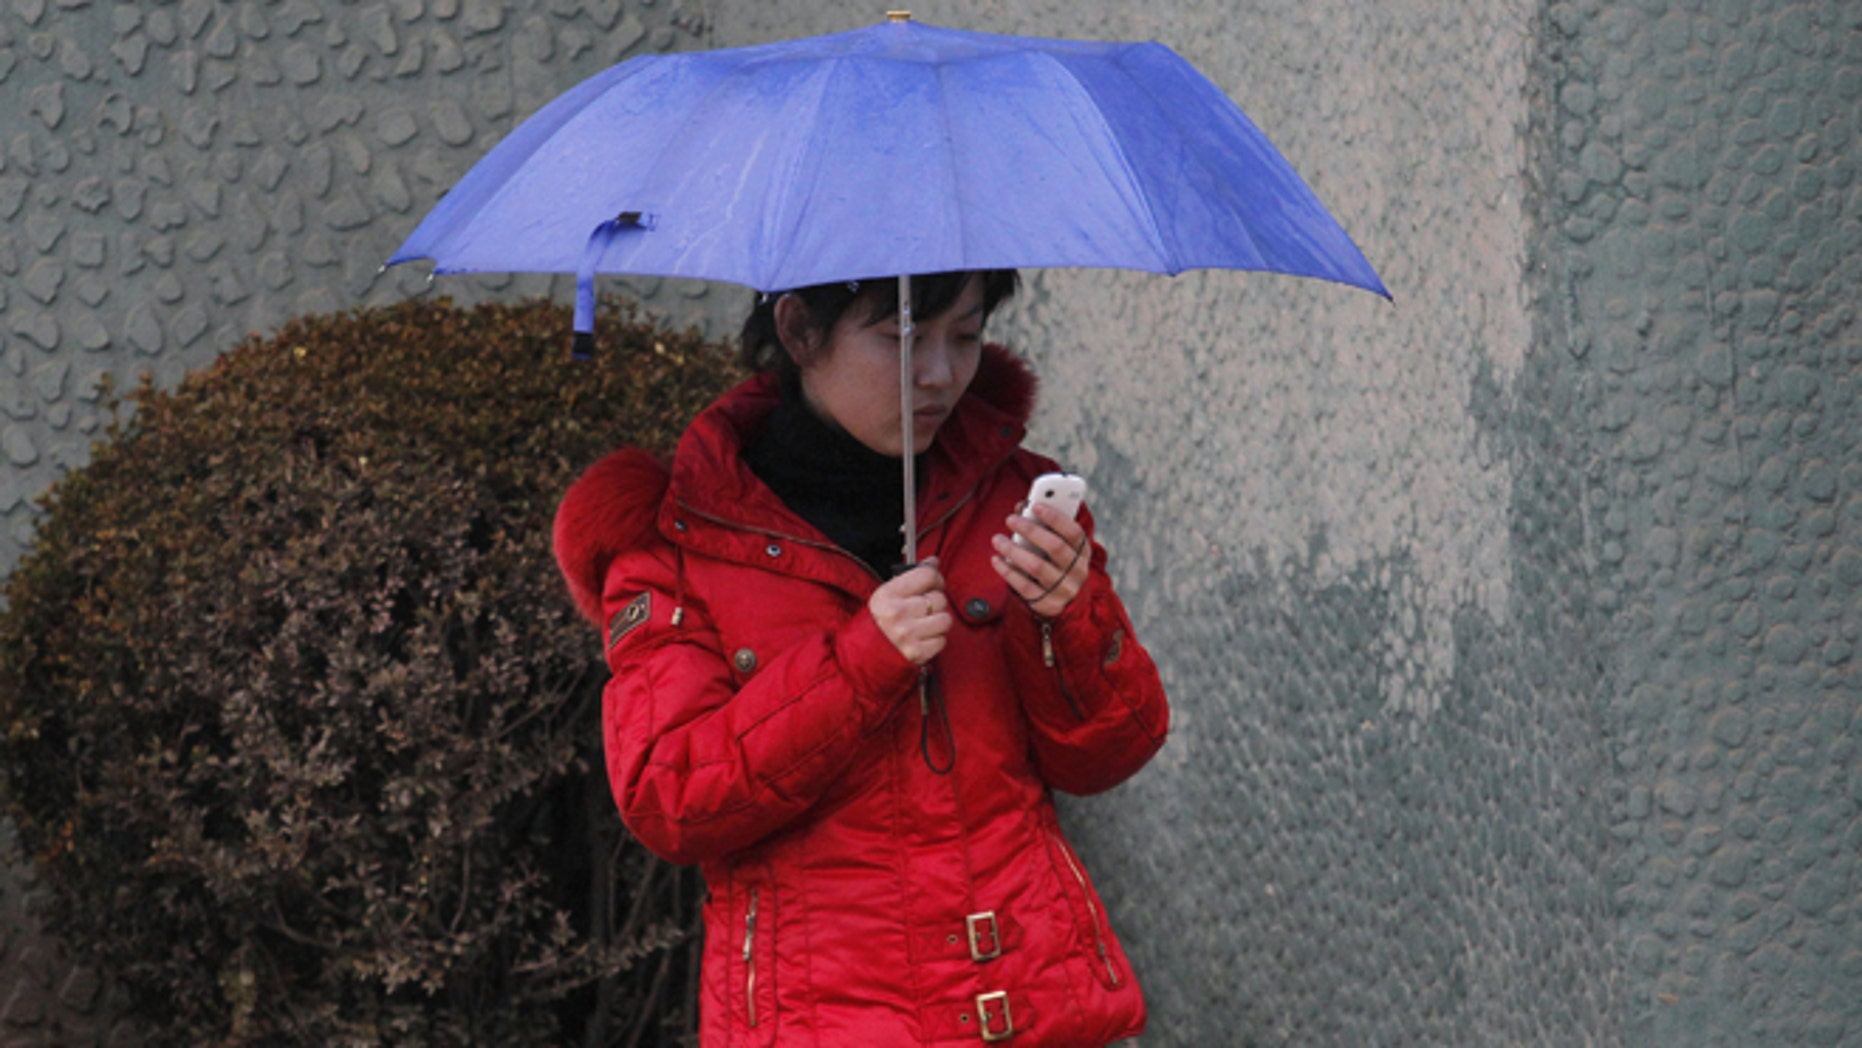 March 16, 2012: In this file photo, a North Korean woman uses a cellphone on a sidewalk in Pyongyang, North Korea. North Korea is loosening its restrictions on foreign cellphones and is allowing visitors to bring their own phones into the country.